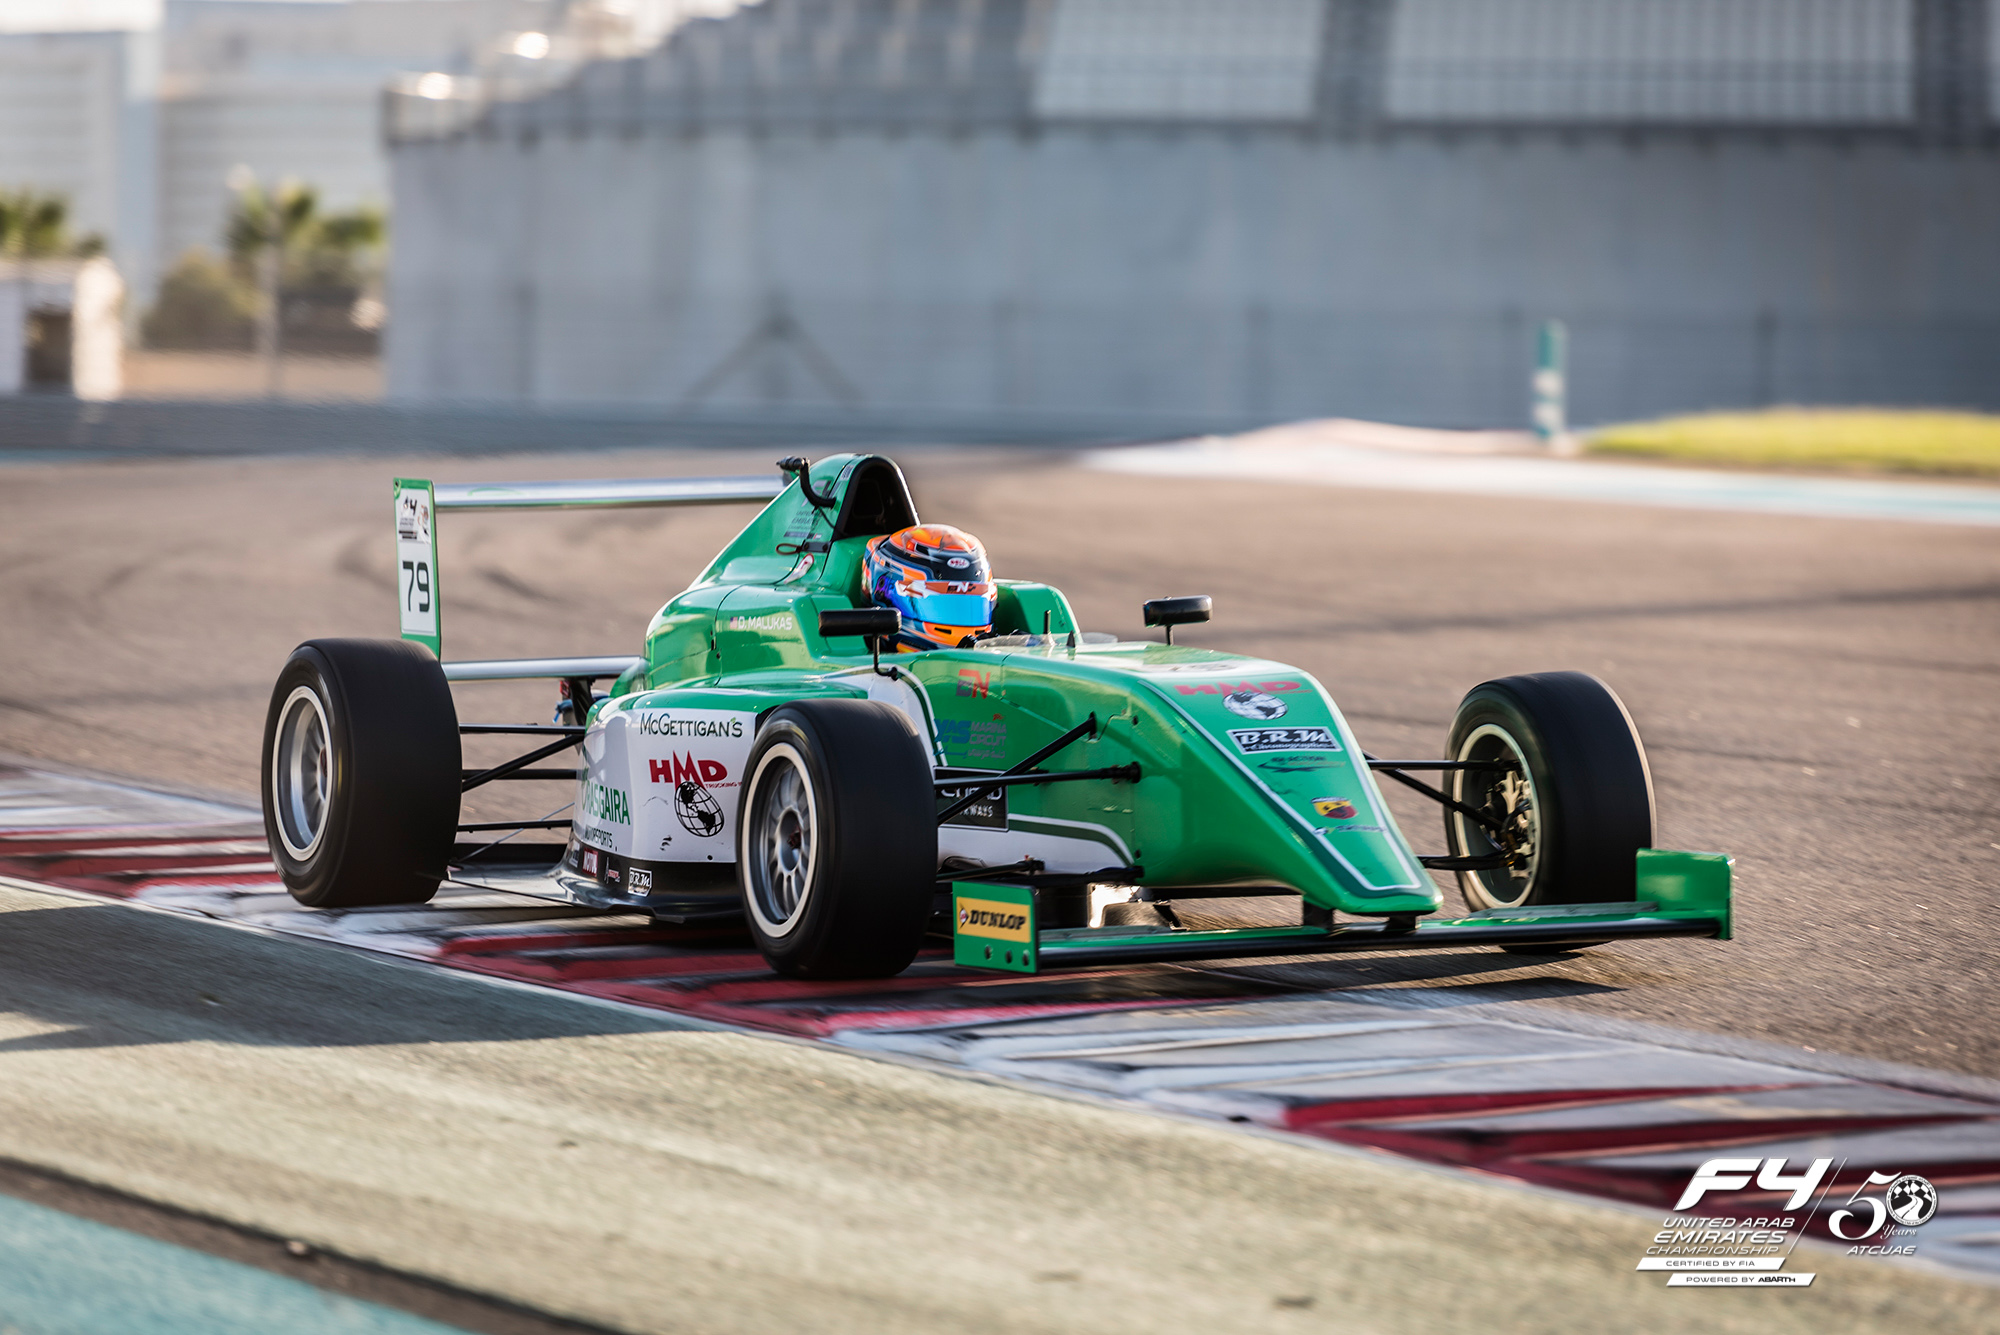 2016 12 18   F4 Second Roud   Abu Dhabi 26 Of 39